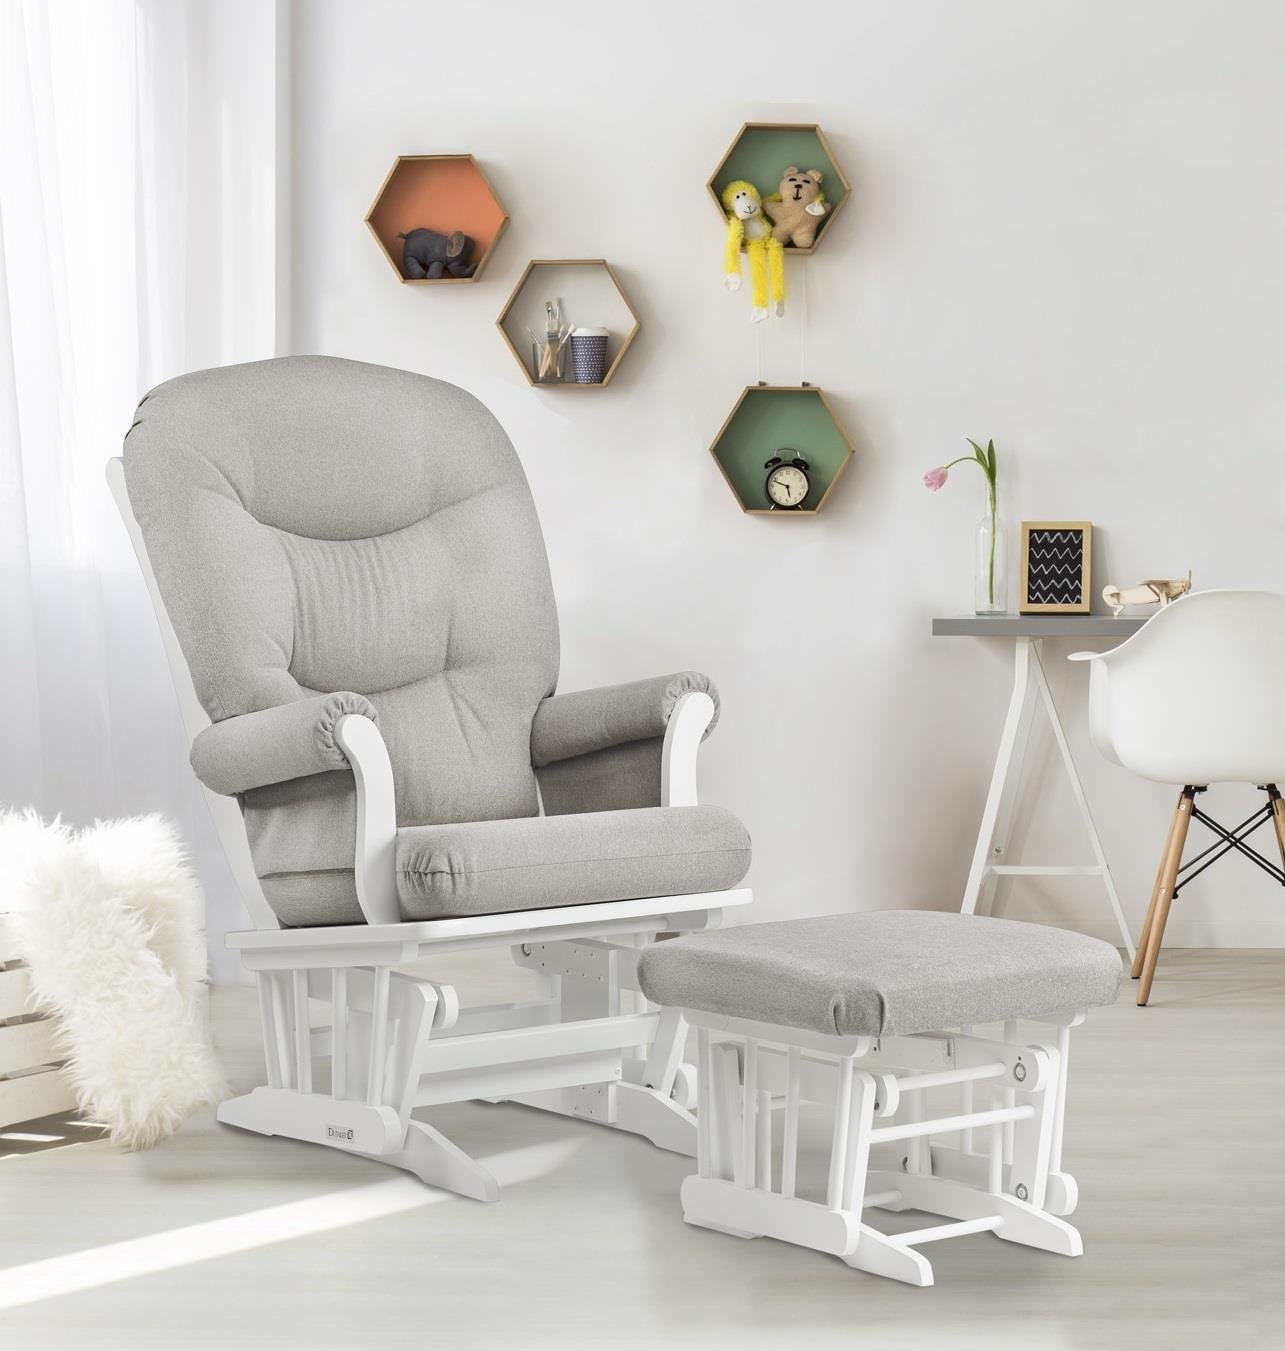 Dutailier SLEIGH 0337 Glider chair with Ottoman included by Dutailier